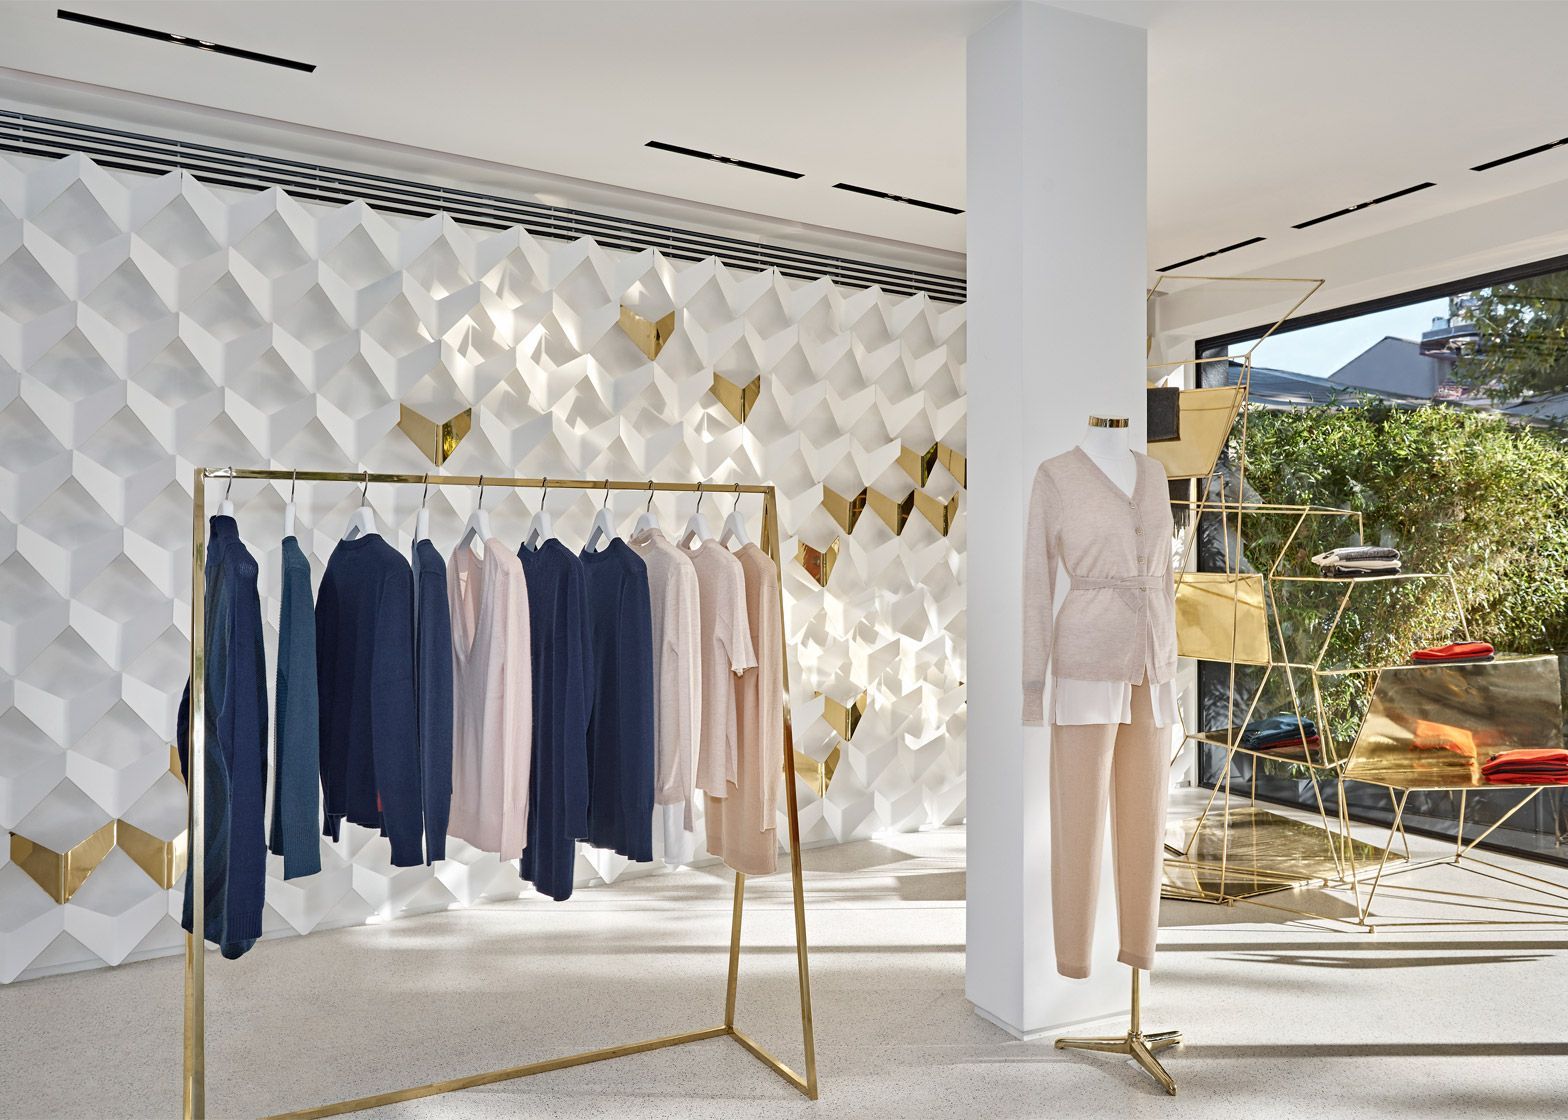 marketing plan for clothing boutiques The luxury strategy aims at creating the highest brand value and pricing power by leveraging all  shouldn't any marketing plan start by summarizing the voice.